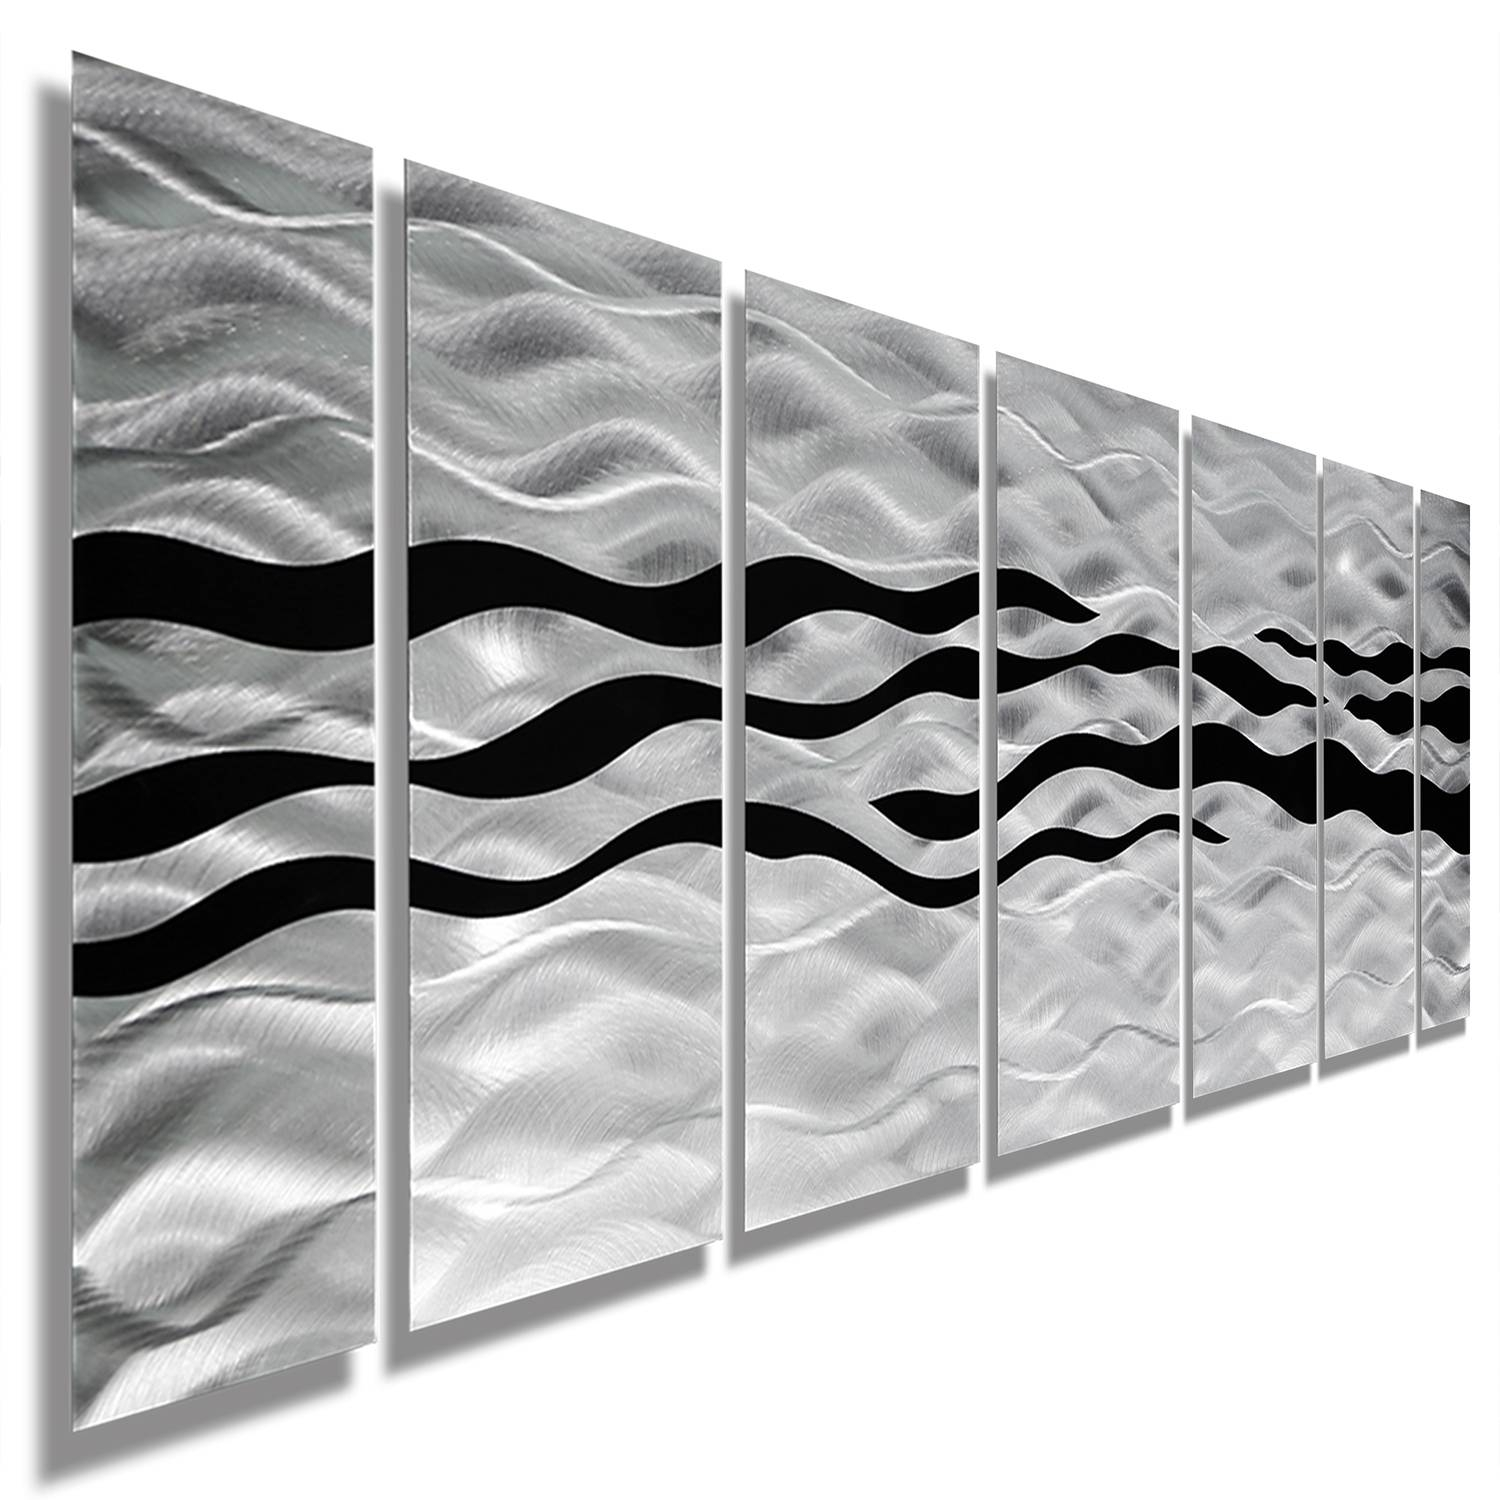 Wild Ways – Silver And Black Modern Metallic Wall Hanging Pertaining To Current Black And Silver Metal Wall Art (View 16 of 20)